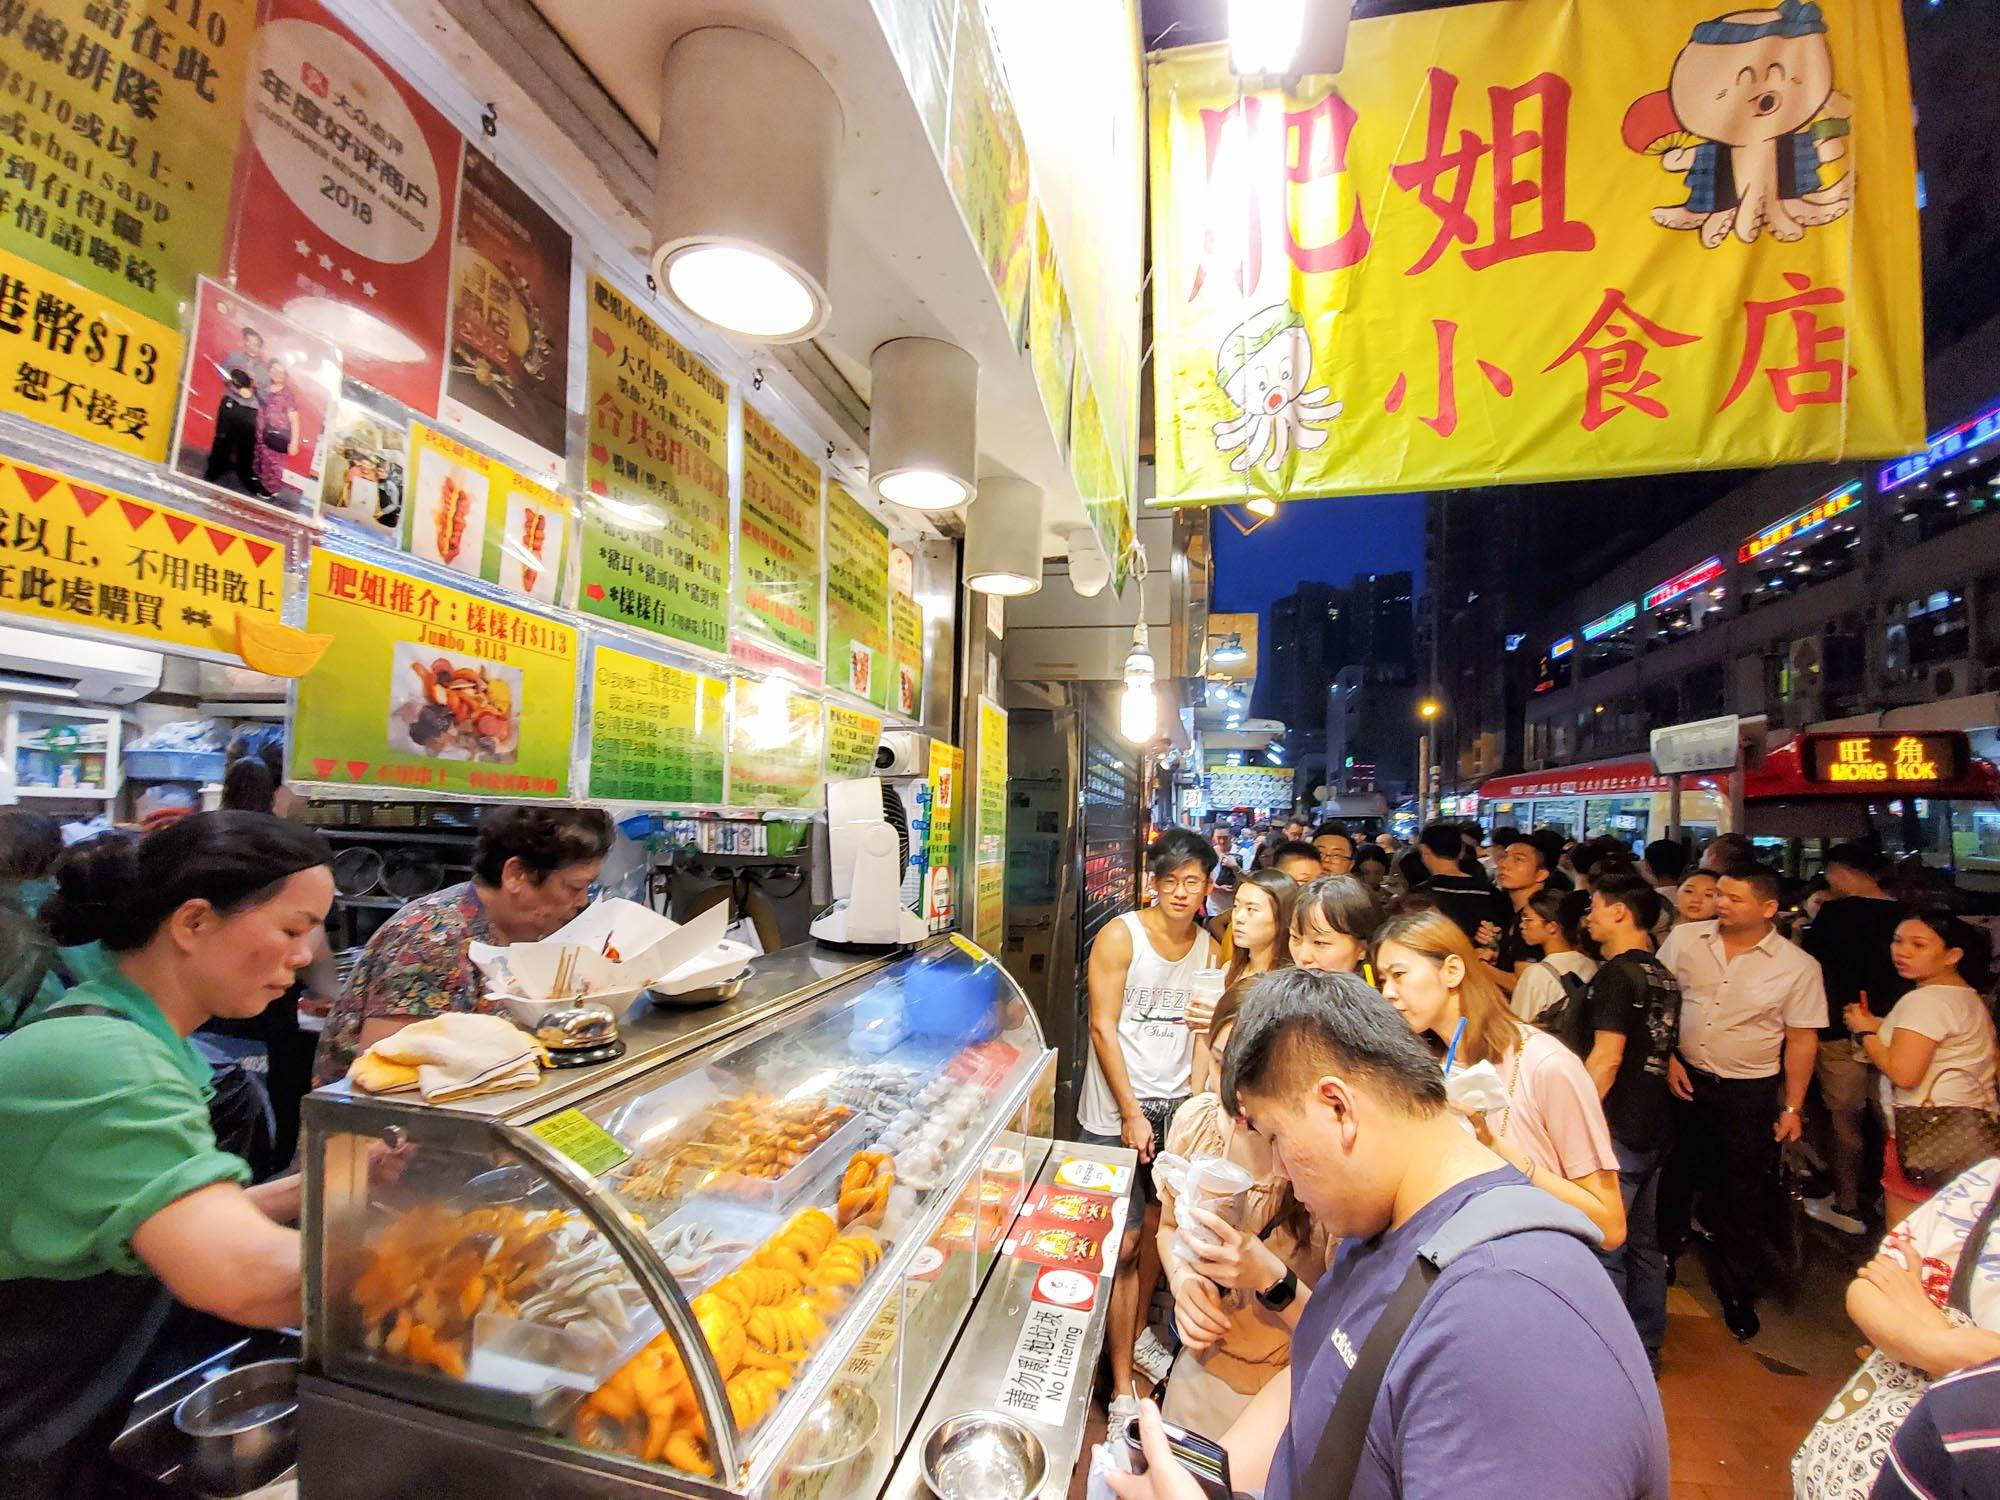 the front of the shop at feijie, a famous street food in hong kong